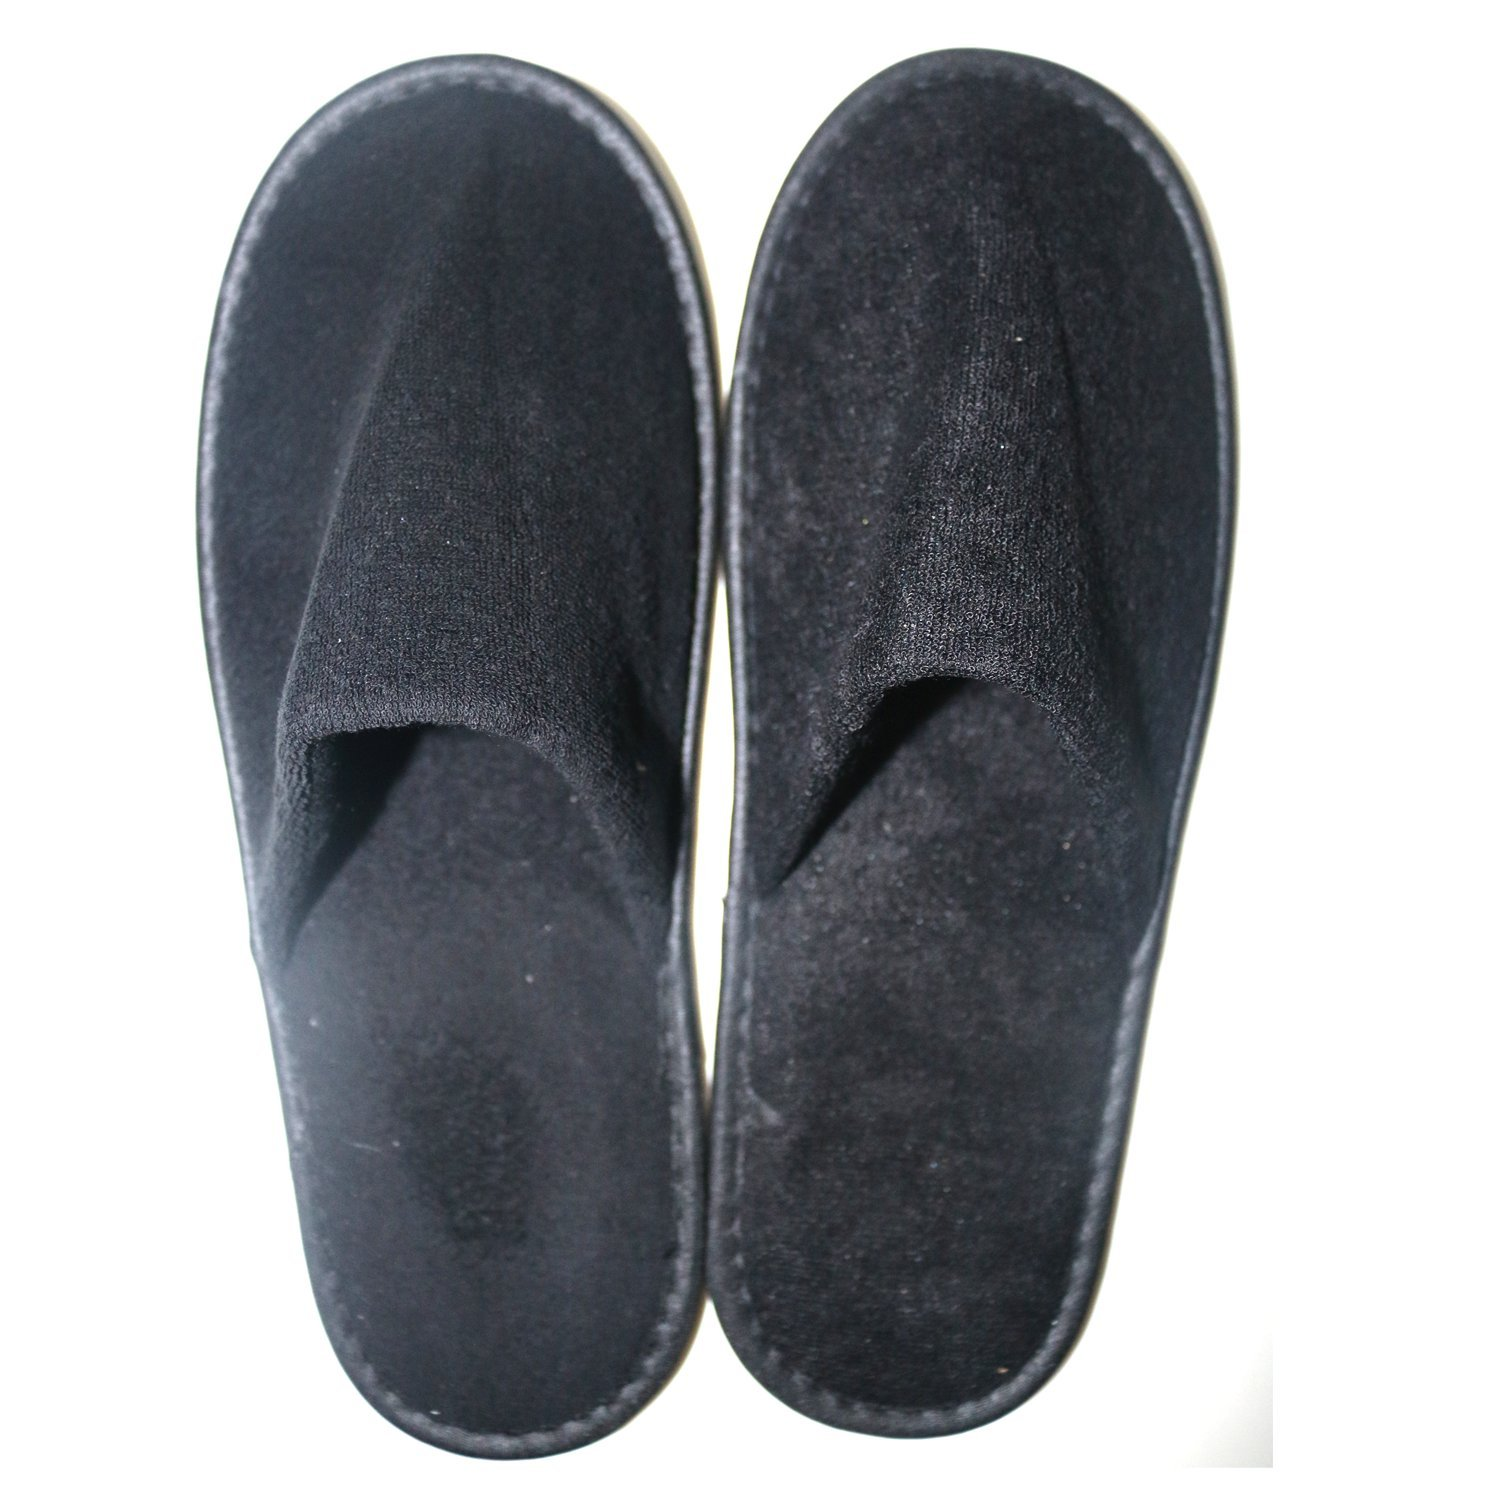 5 Pairs Disposable Slippers - Toweling Disposable Non-Skid Slippers Great for Spa Guest